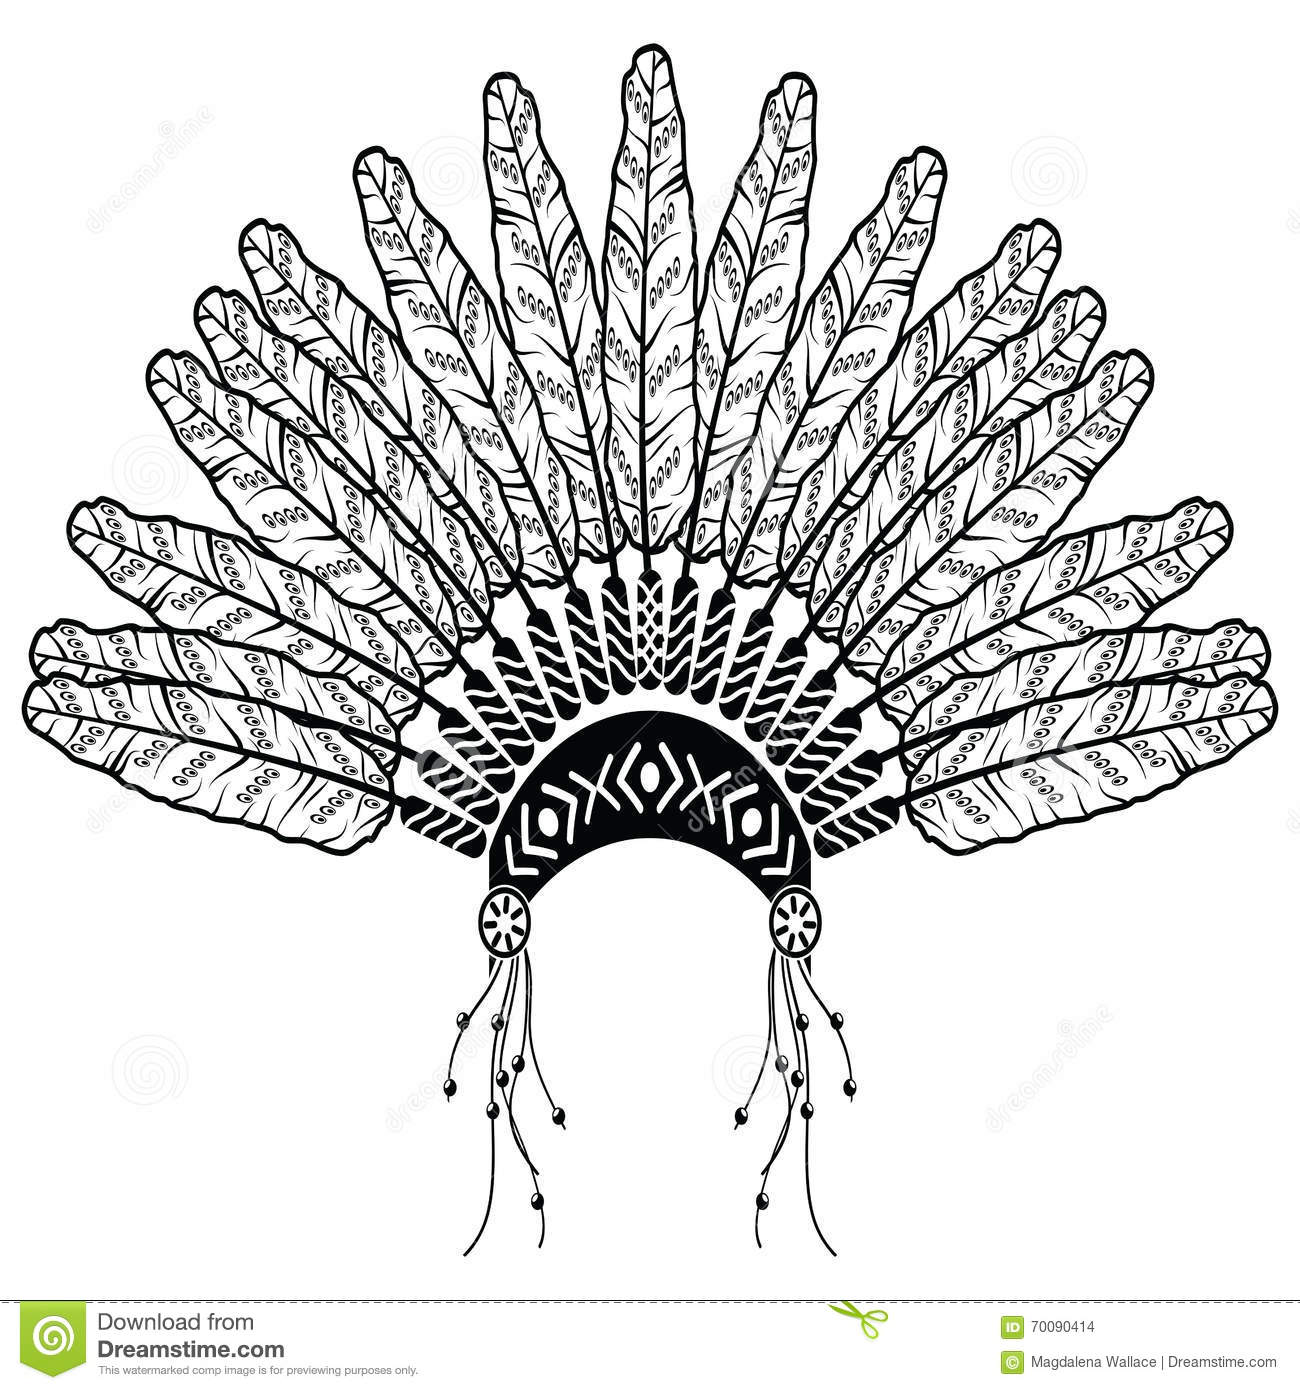 Native american ornaments - Headdress In Aztec Style Symbolizing Native American People In Black And White In Drawing Style With